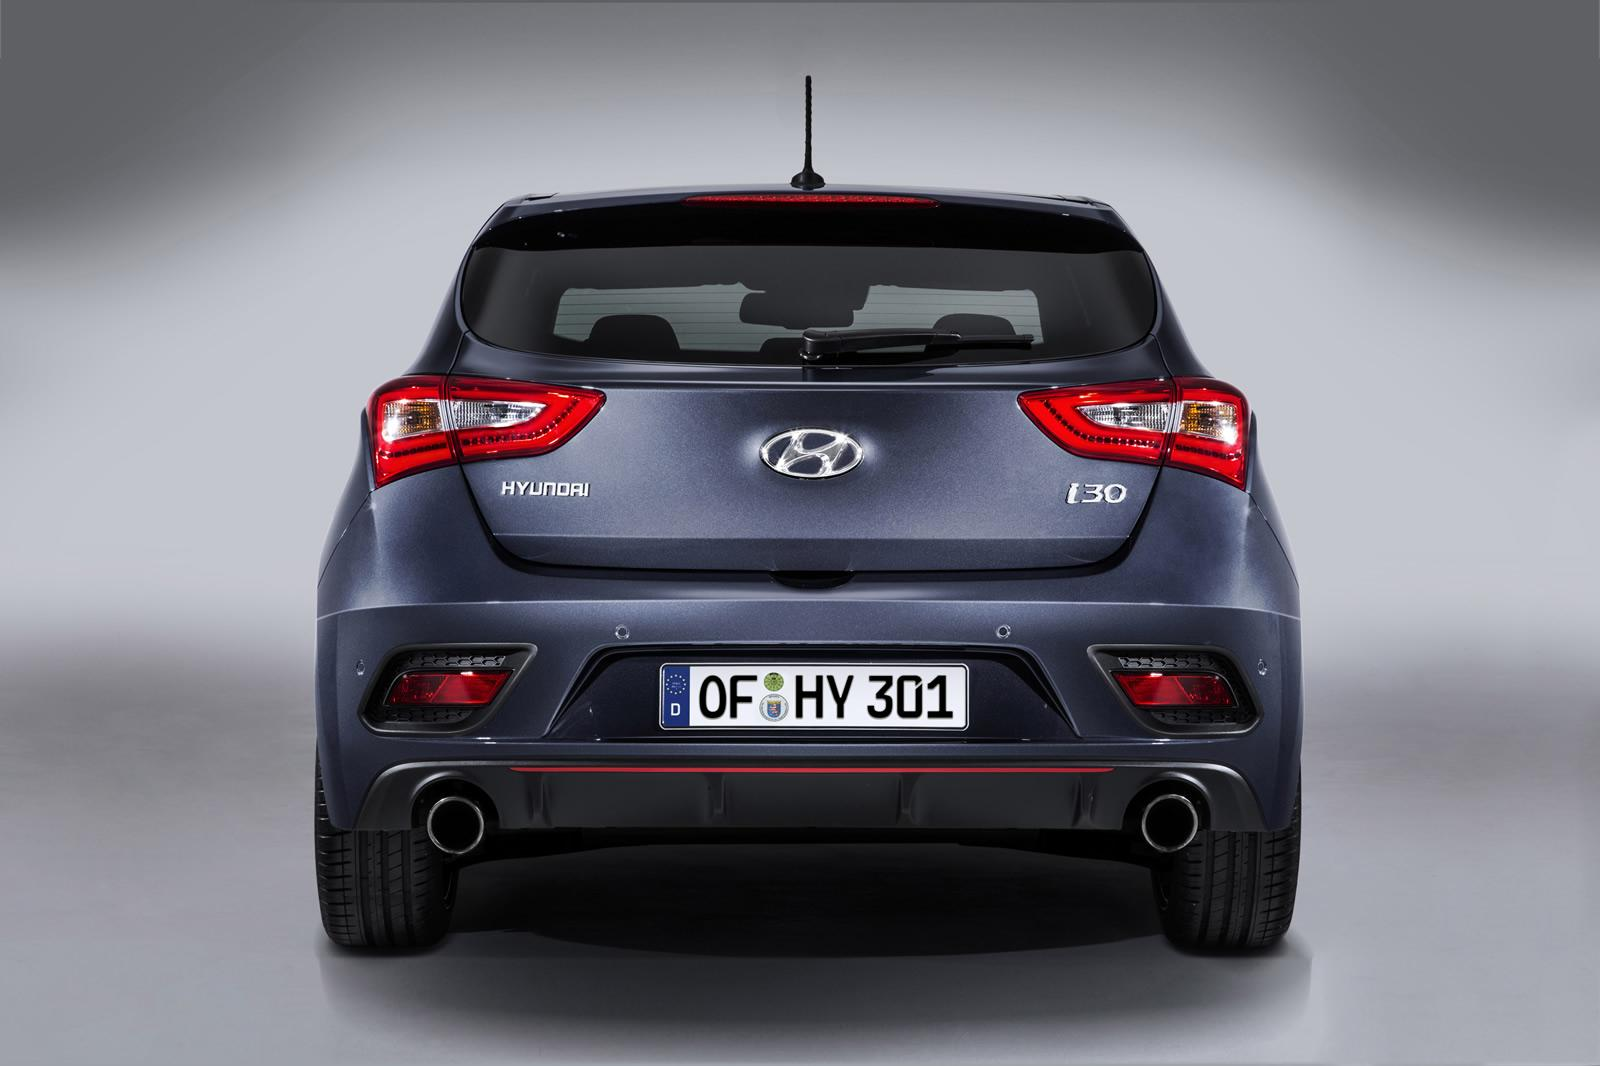 new hyundai i30 turbo launched in the uk with 186 hp. Black Bedroom Furniture Sets. Home Design Ideas